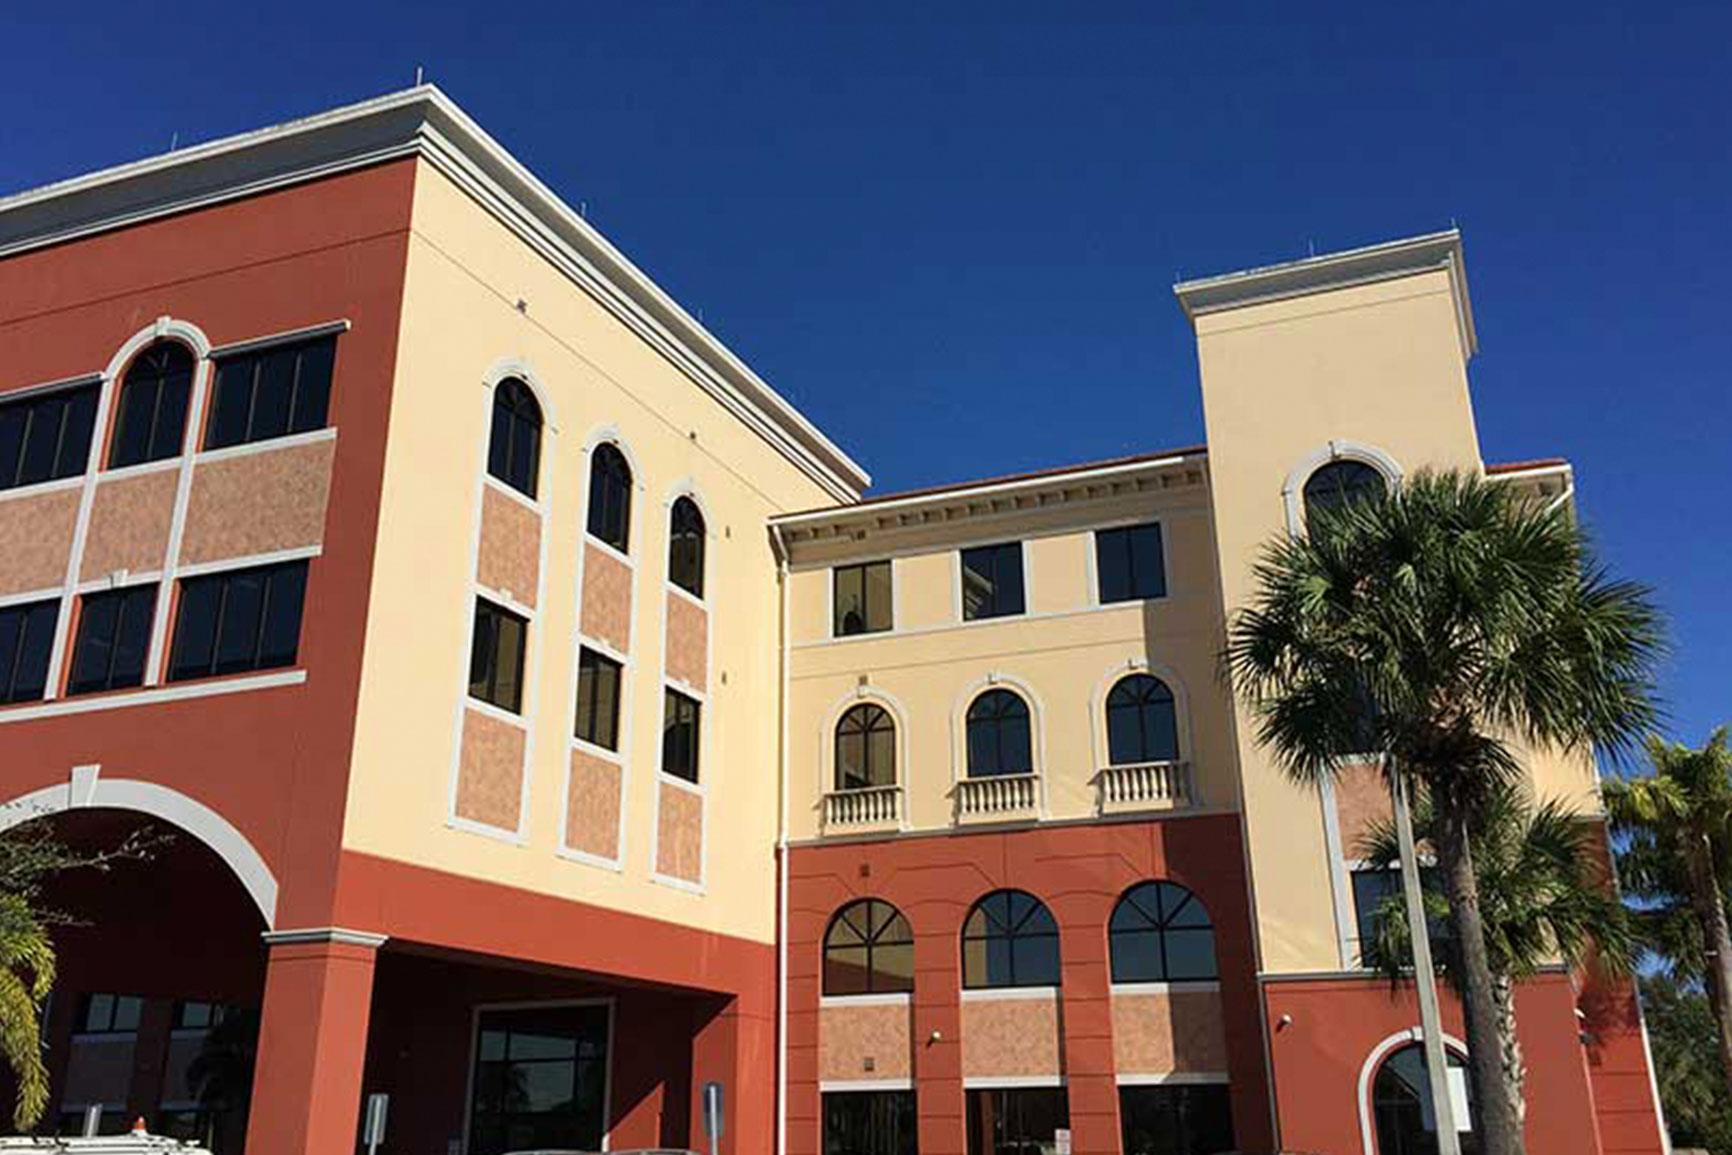 Retail building with tinted windows in Southwest Florida